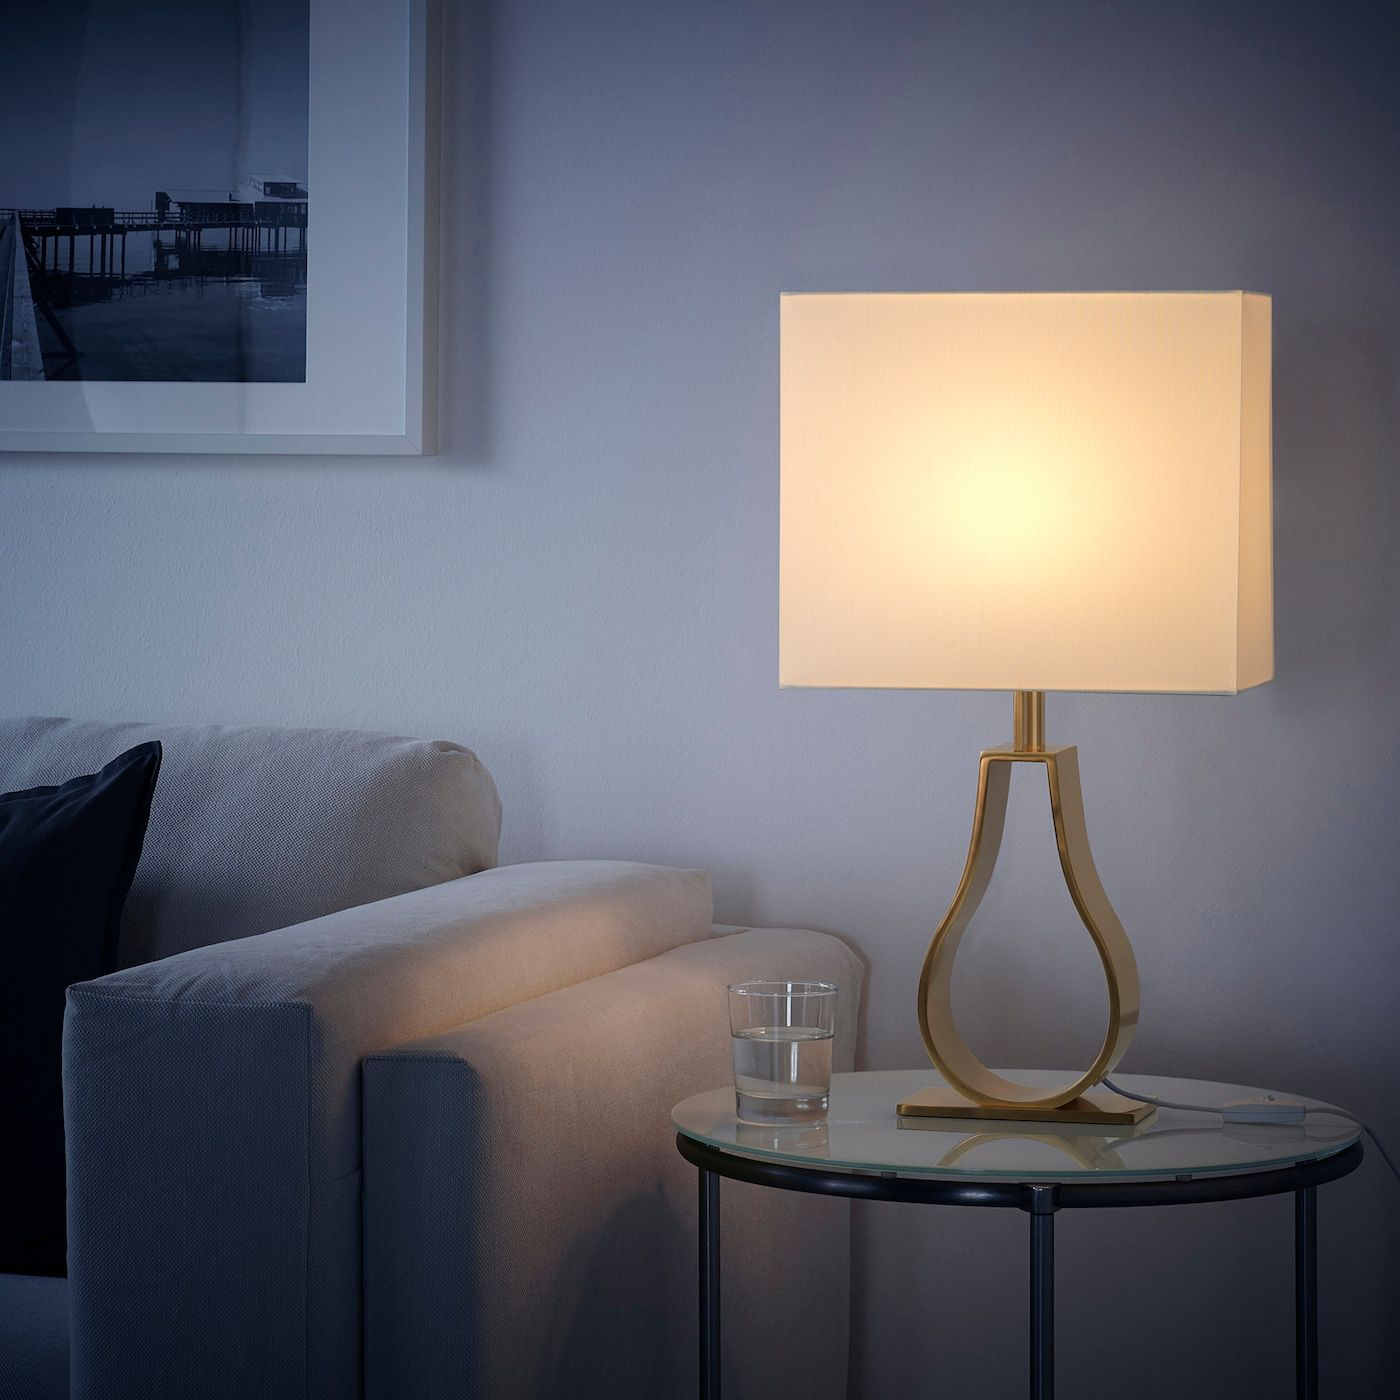 Klabb Table Lamp With Led Bulb Off White Brass Color Max 13 W Ikea In 2020 Table Lamp Small Table Lamp Table Lamp Lighting